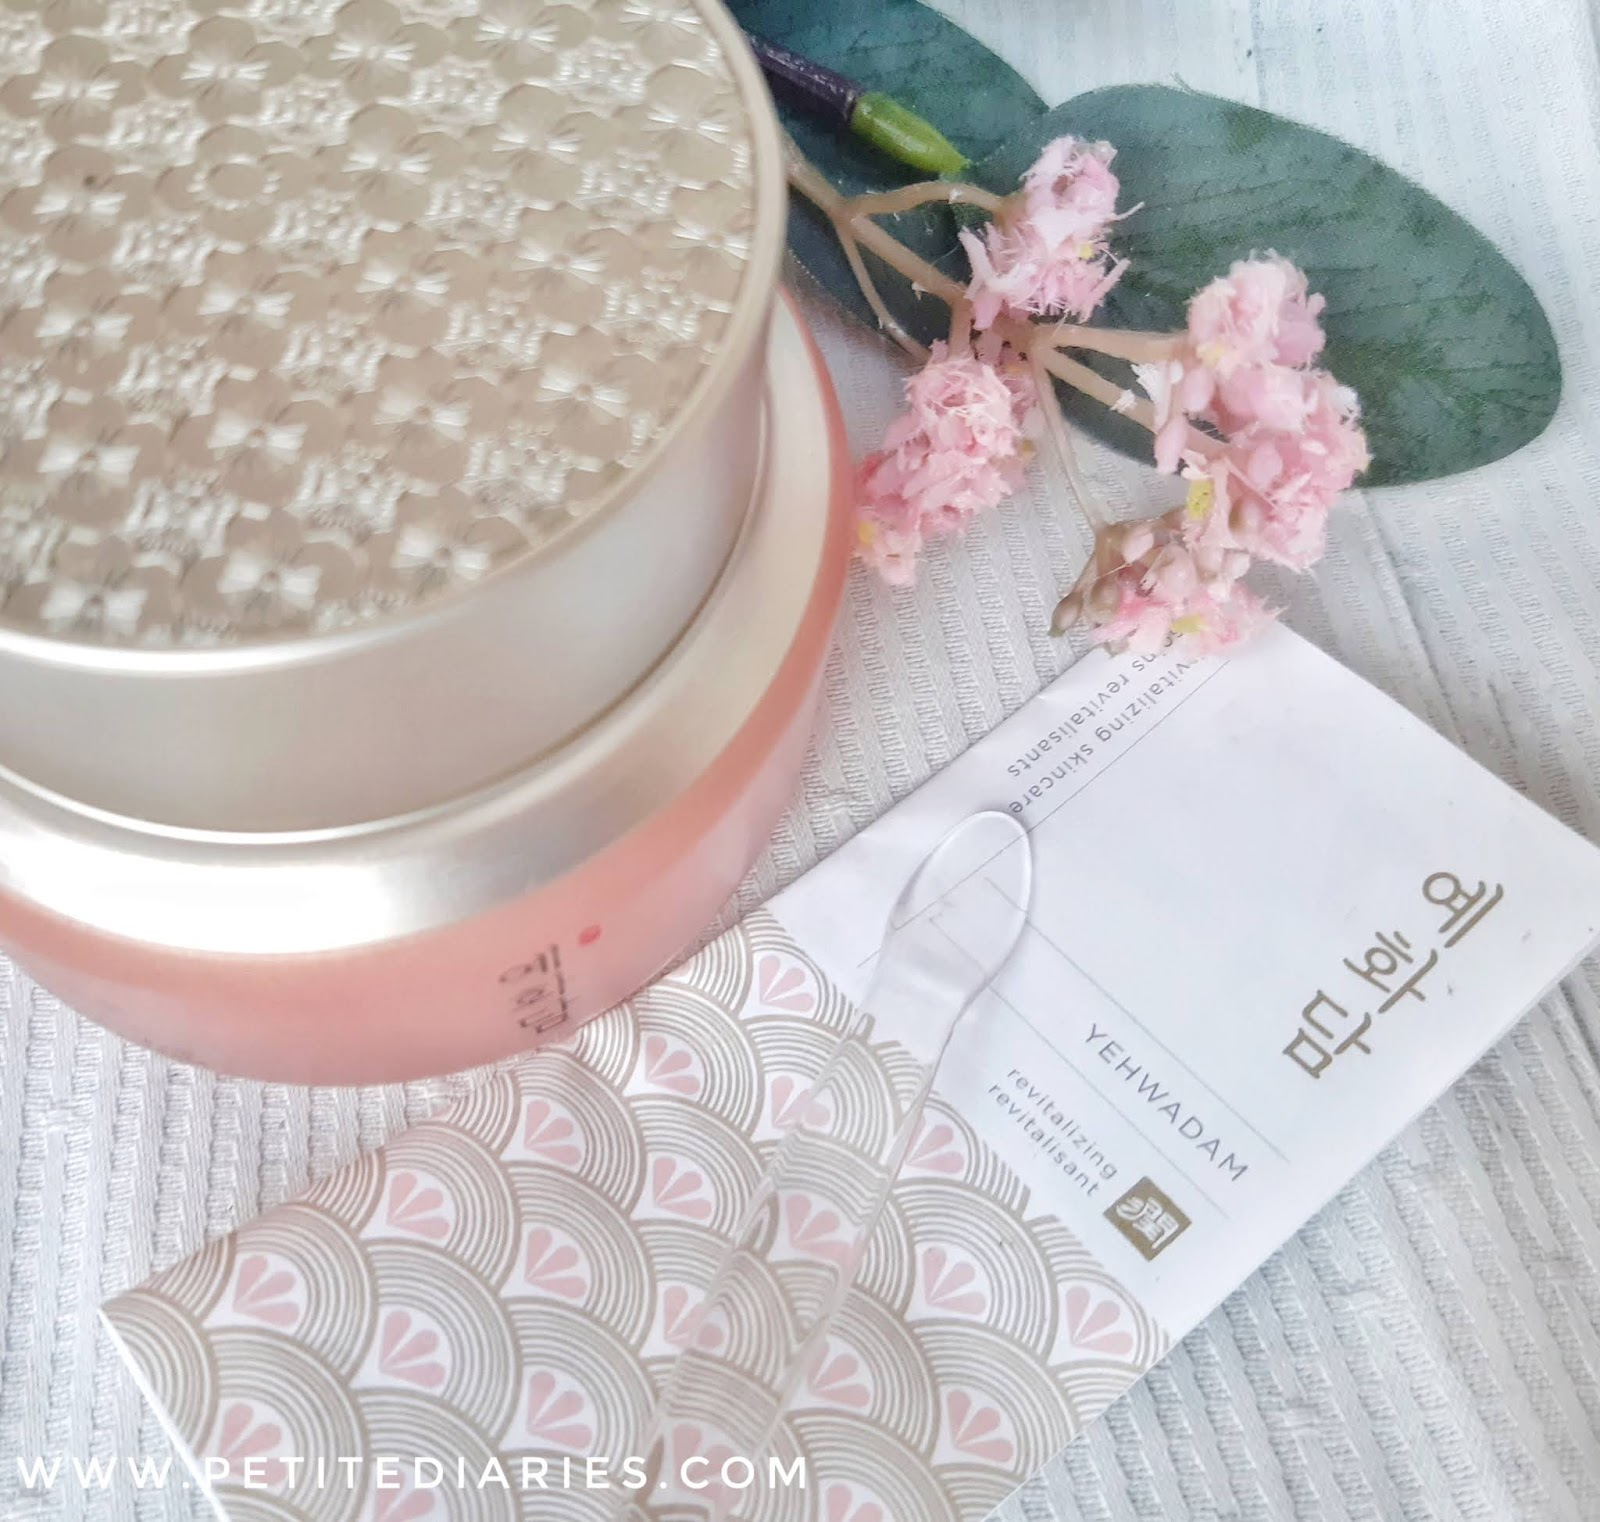 try the faceshop yehwadam revitalizing cream review